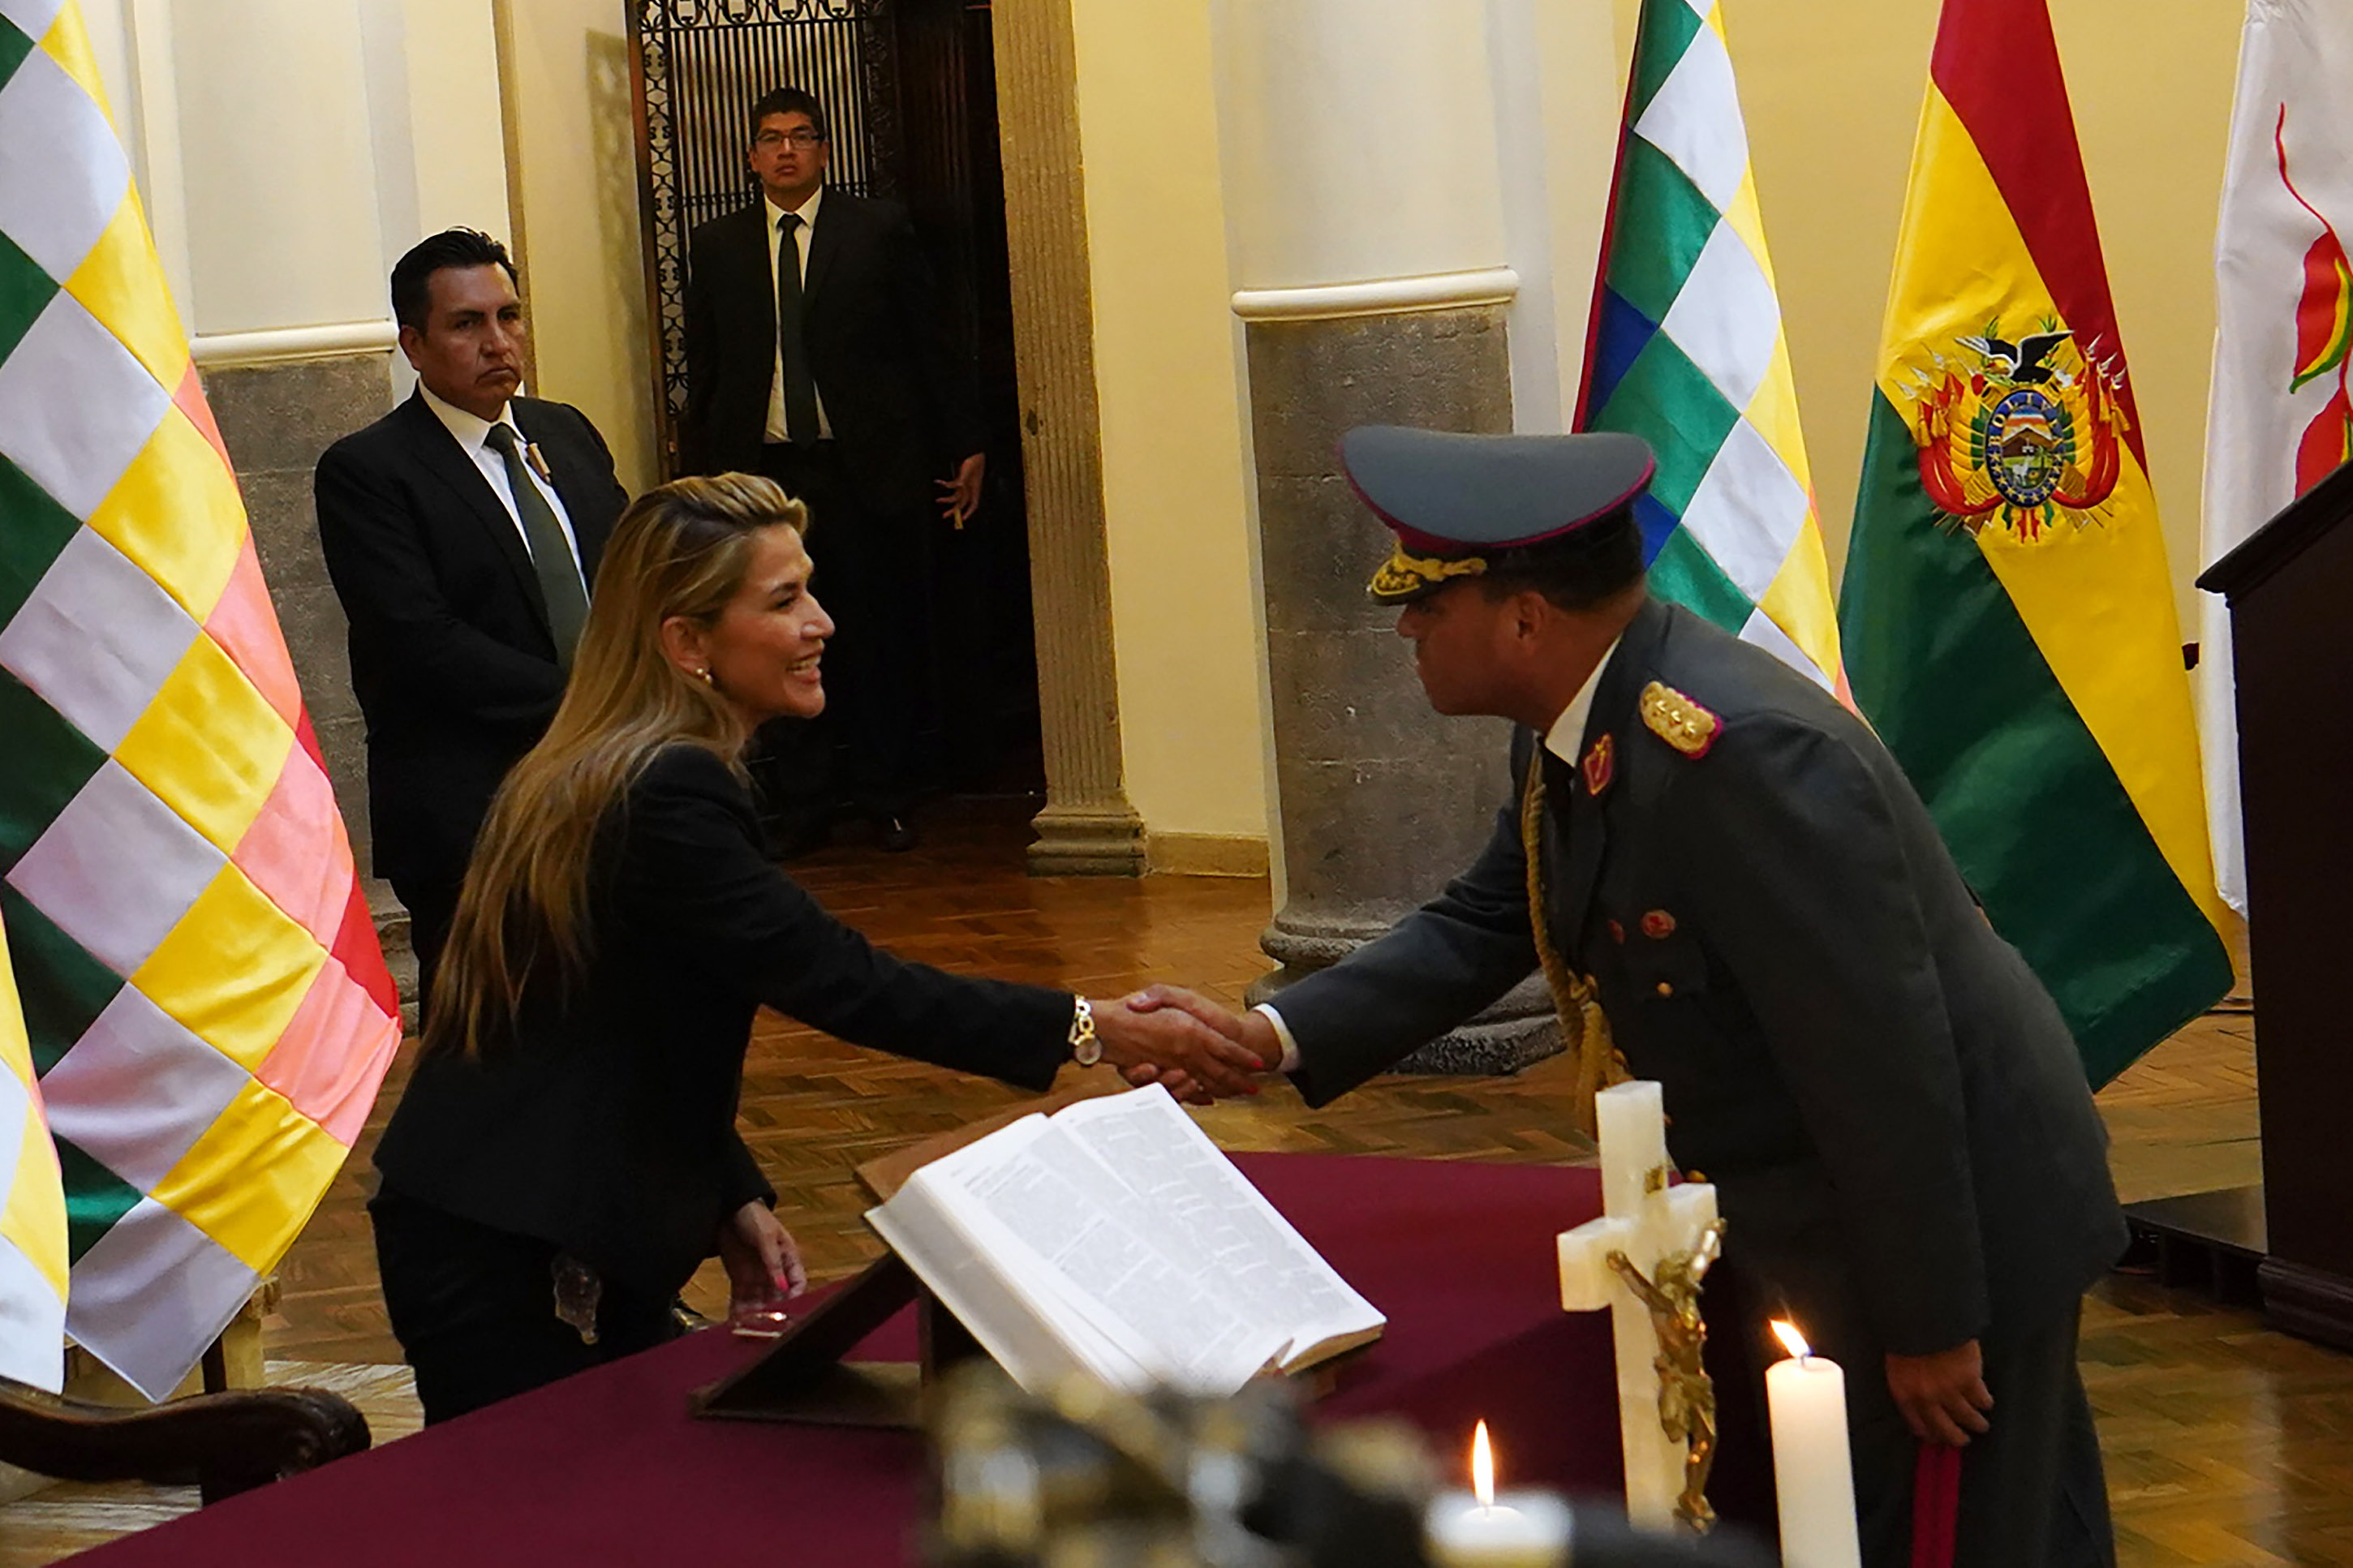 13 November 2019: Interim Bolivian President Jeanine Áñez shakes hands with new commandant in chief of the armed forces General Sergio Orellana Centellas at the presidential palace in La Paz, Bolivia. (Photograph by Javier Mamani/Getty Images)